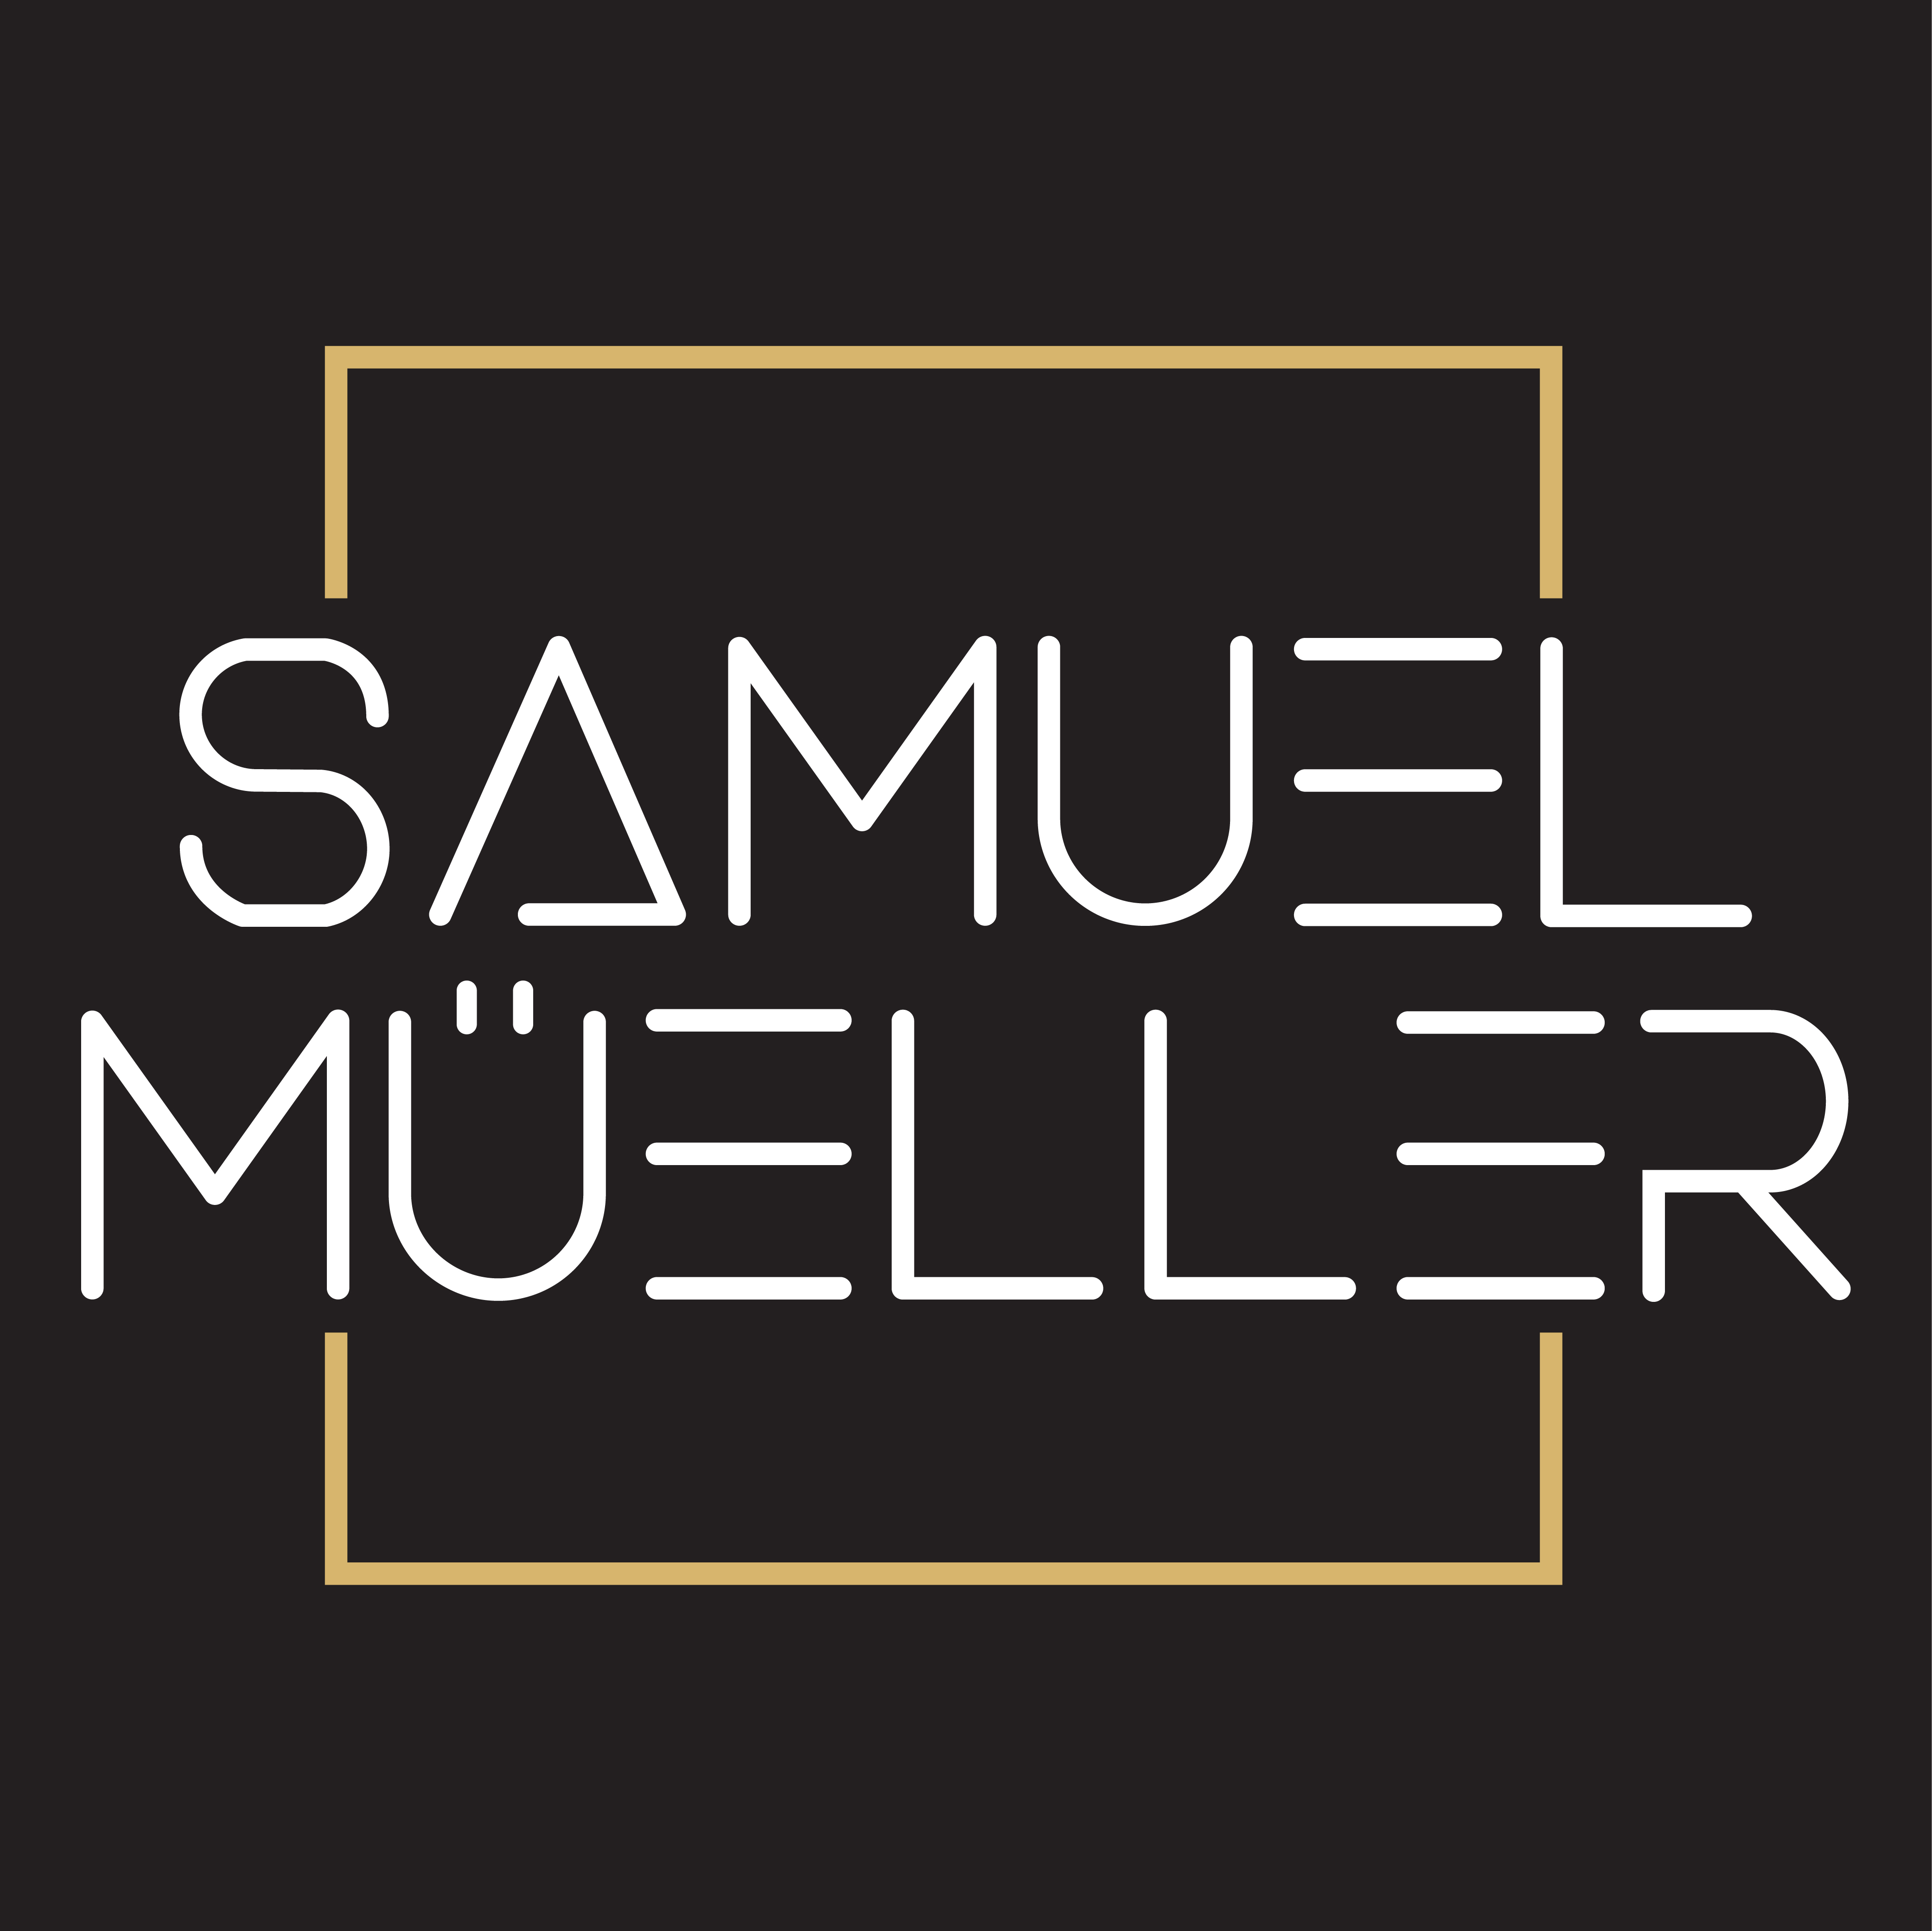 Samuel Mueller